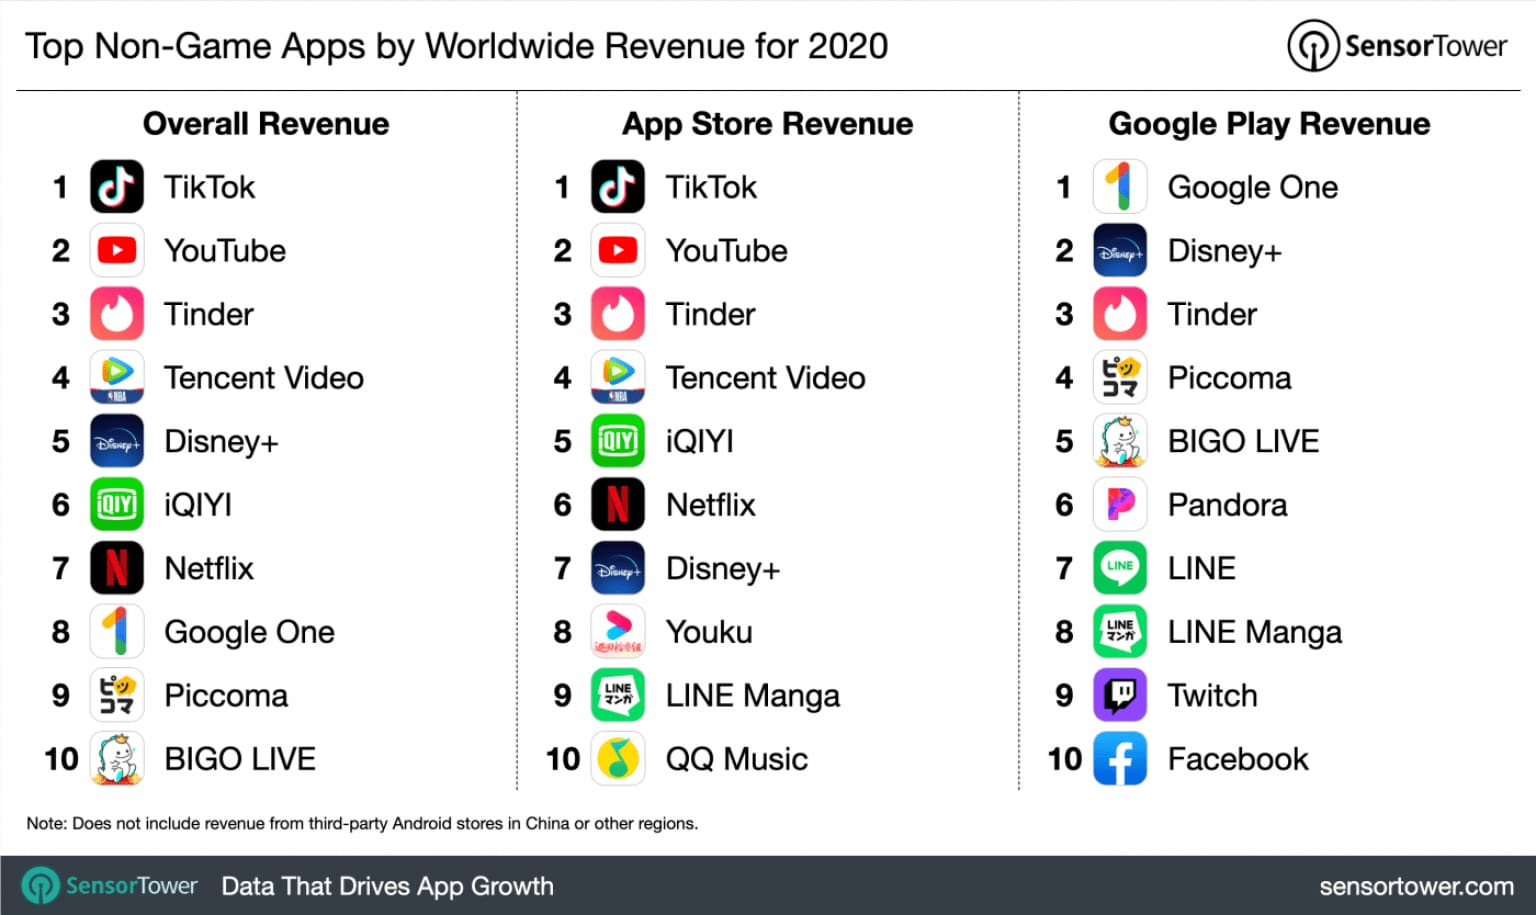 Top Non-Game Apps by Worldwide Revenue for 2020